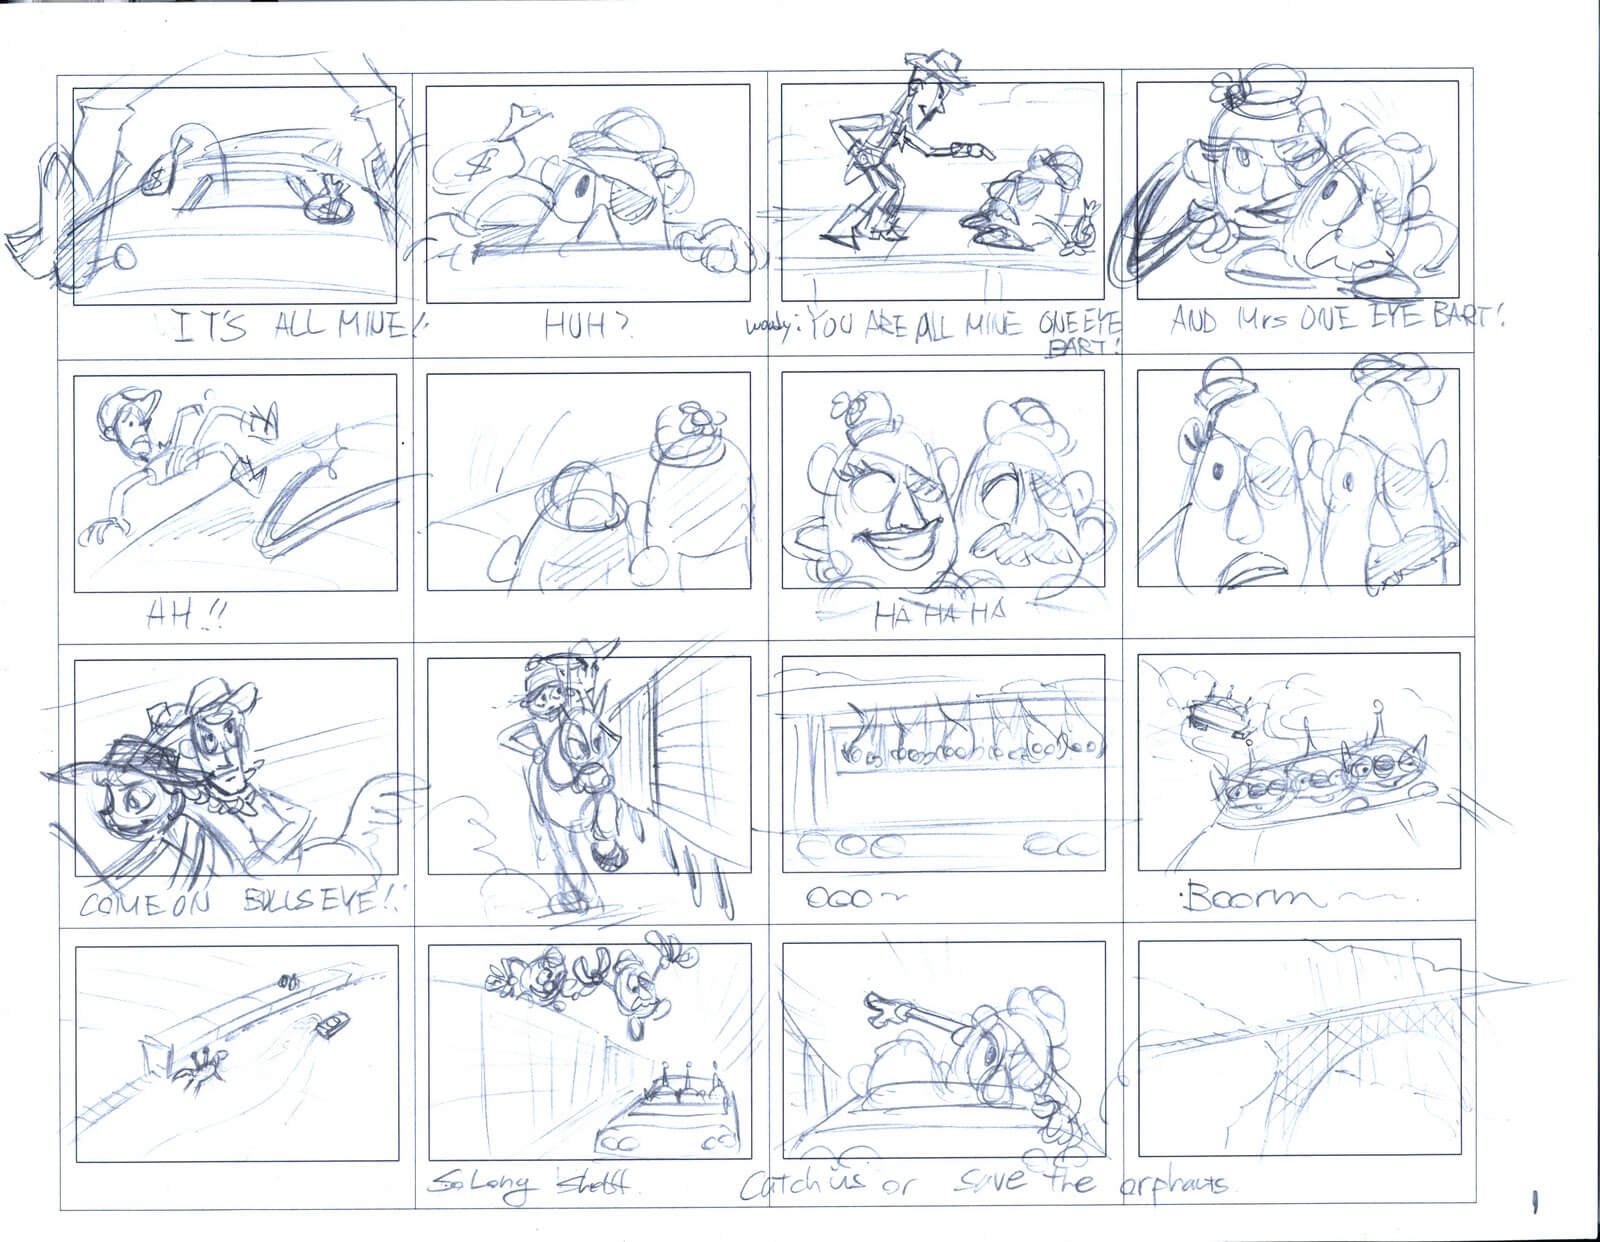 The Pixar Storytelling Formula - An Inside Look - Toy Story 3 Storyboard